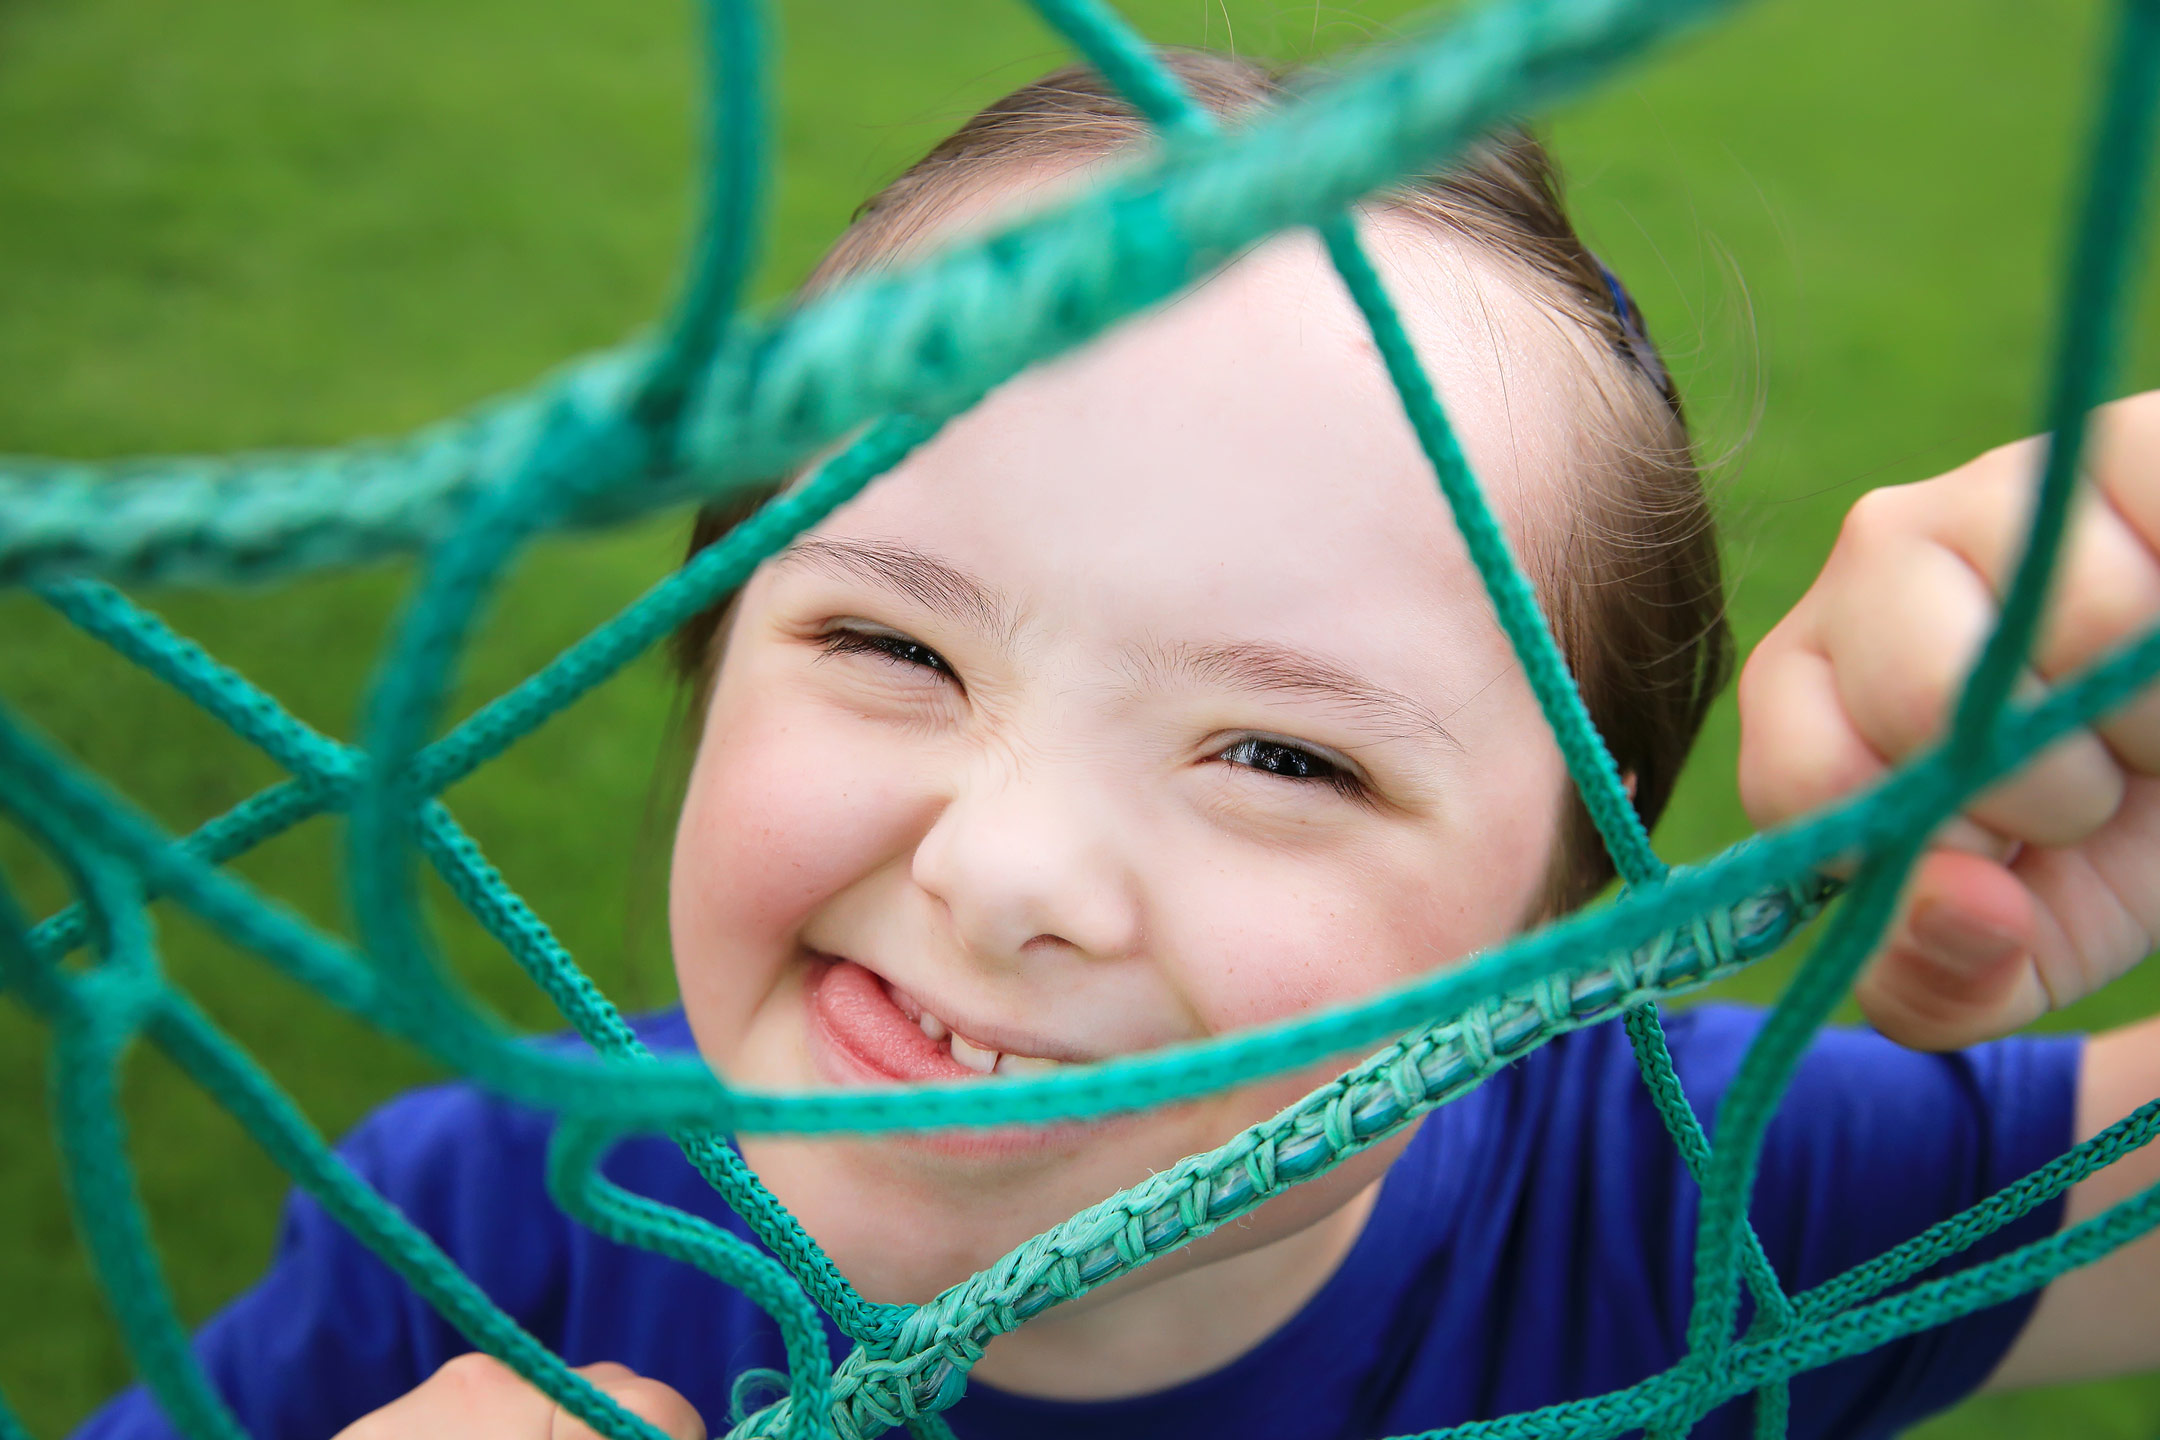 down-syndrome-girl-smiling2160